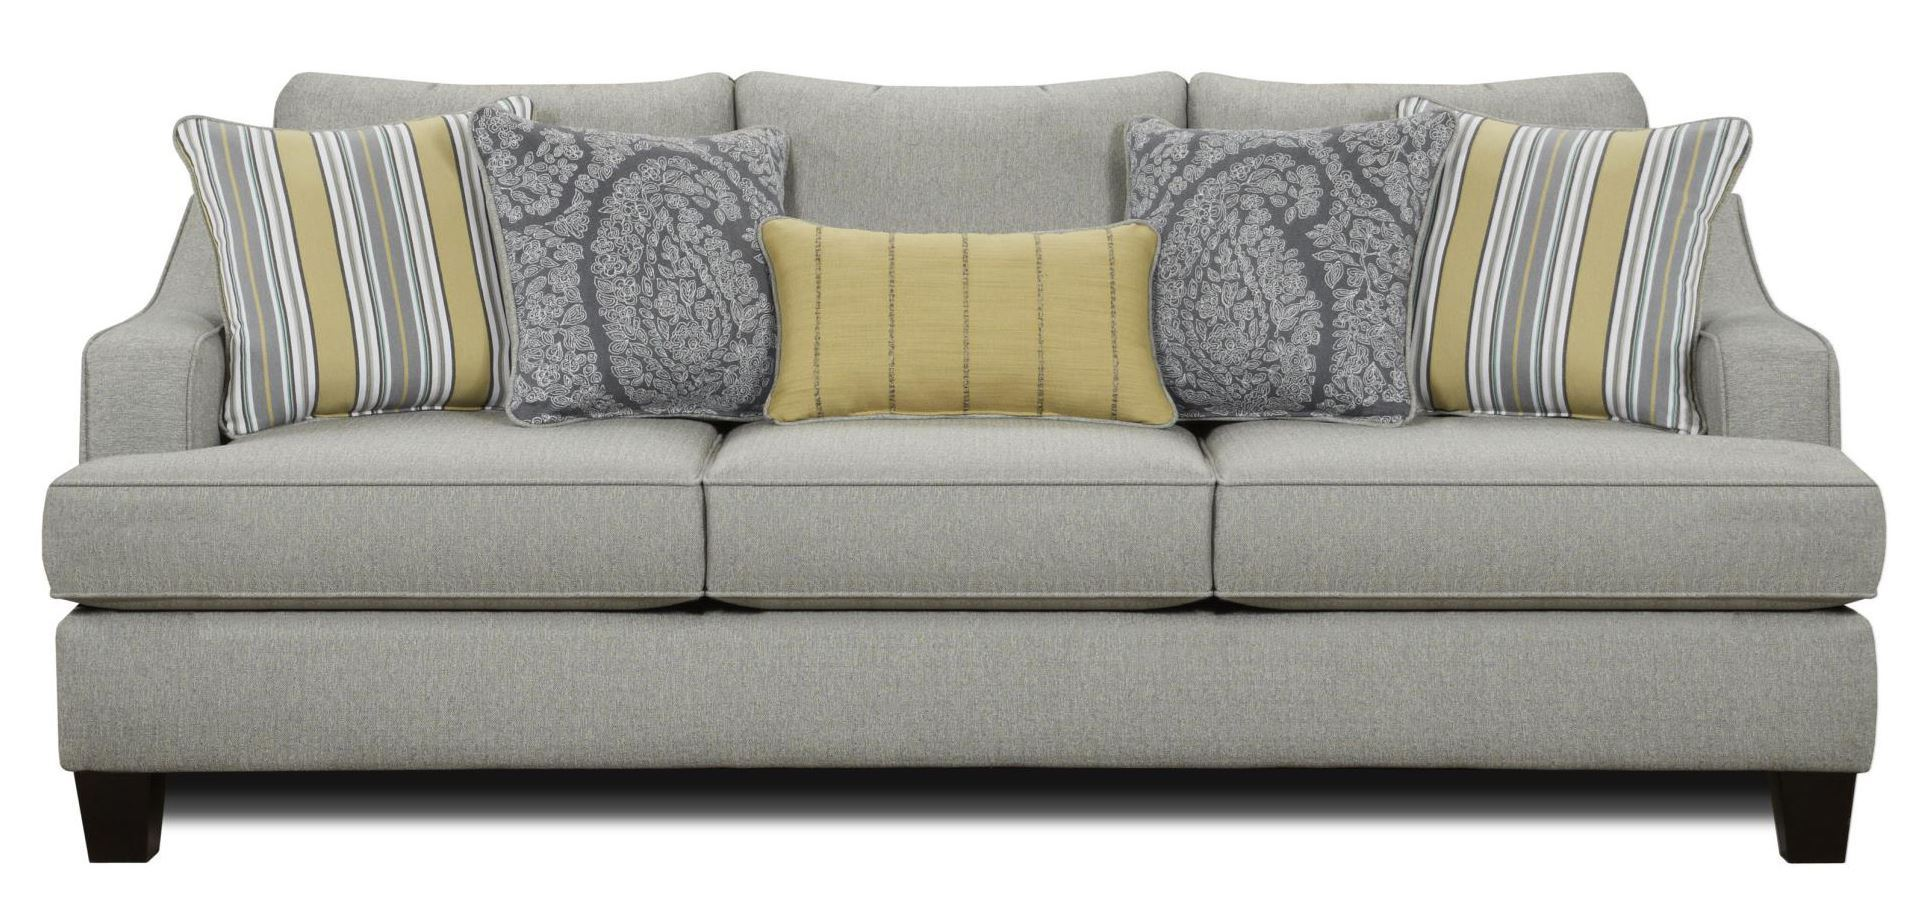 Picture of Chalet Platinum Sofa